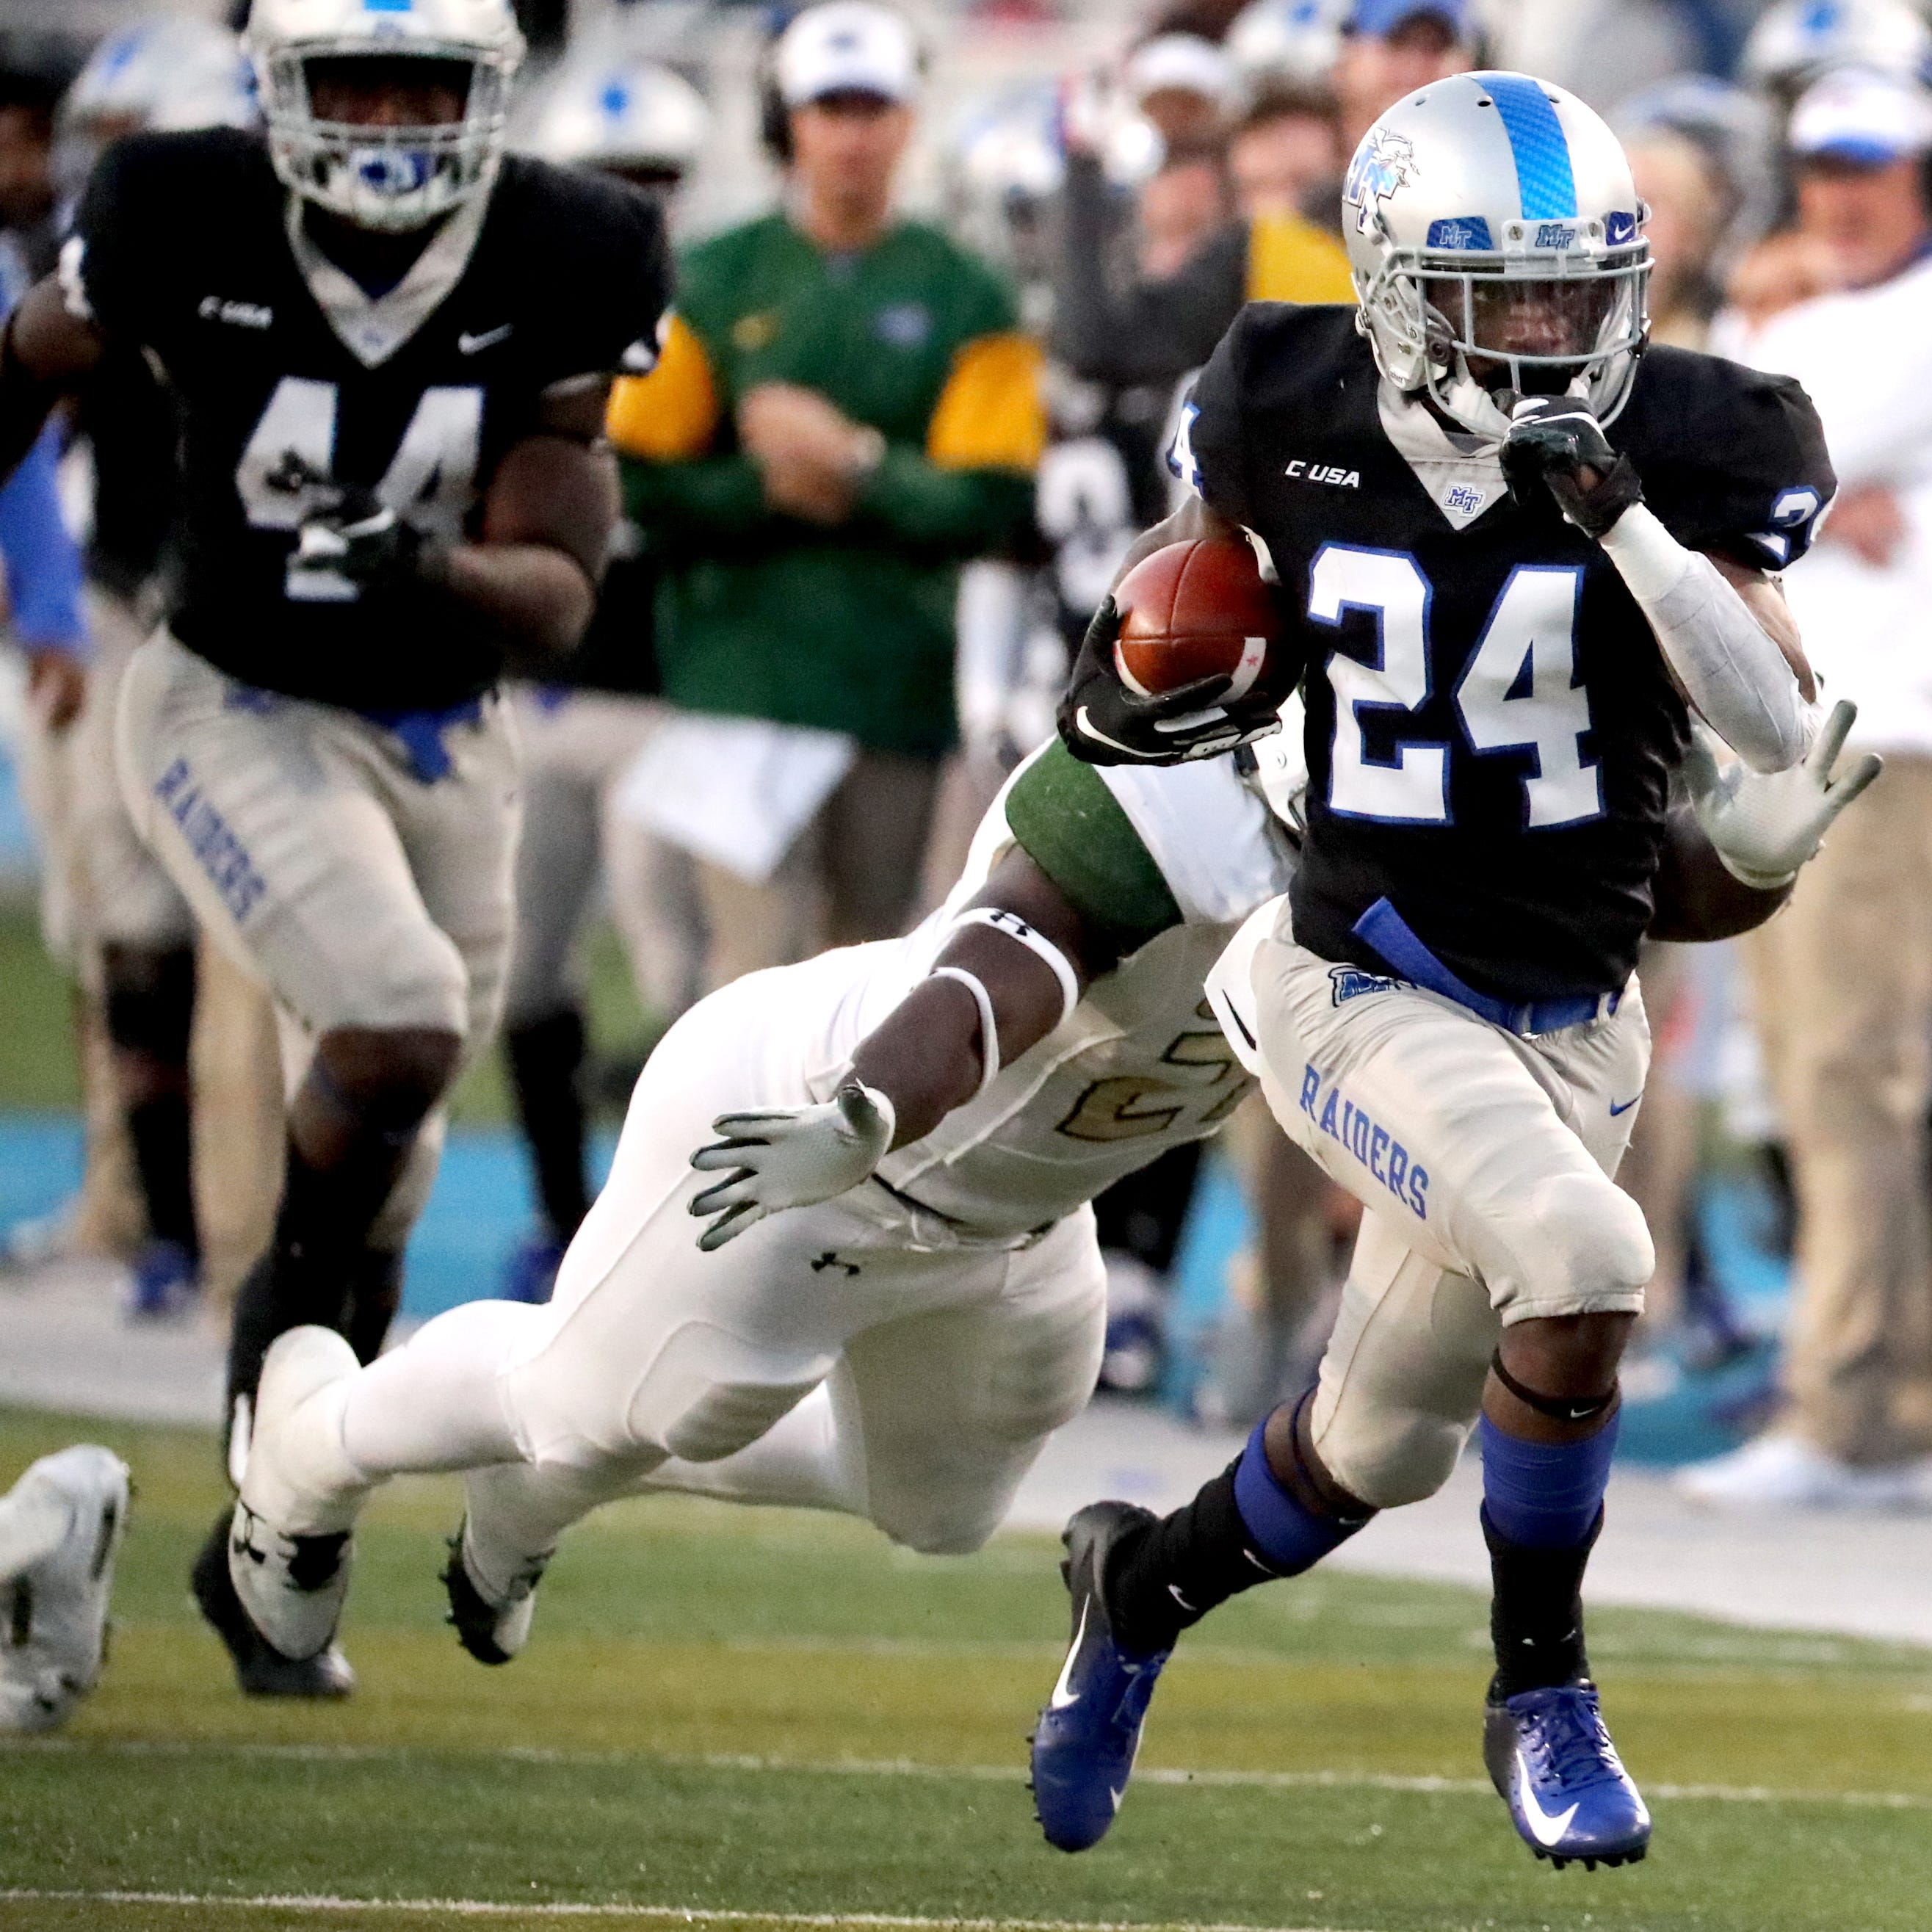 MTSU wide receiver Zack Dobson ejected for targeting in New Orleans Bowl